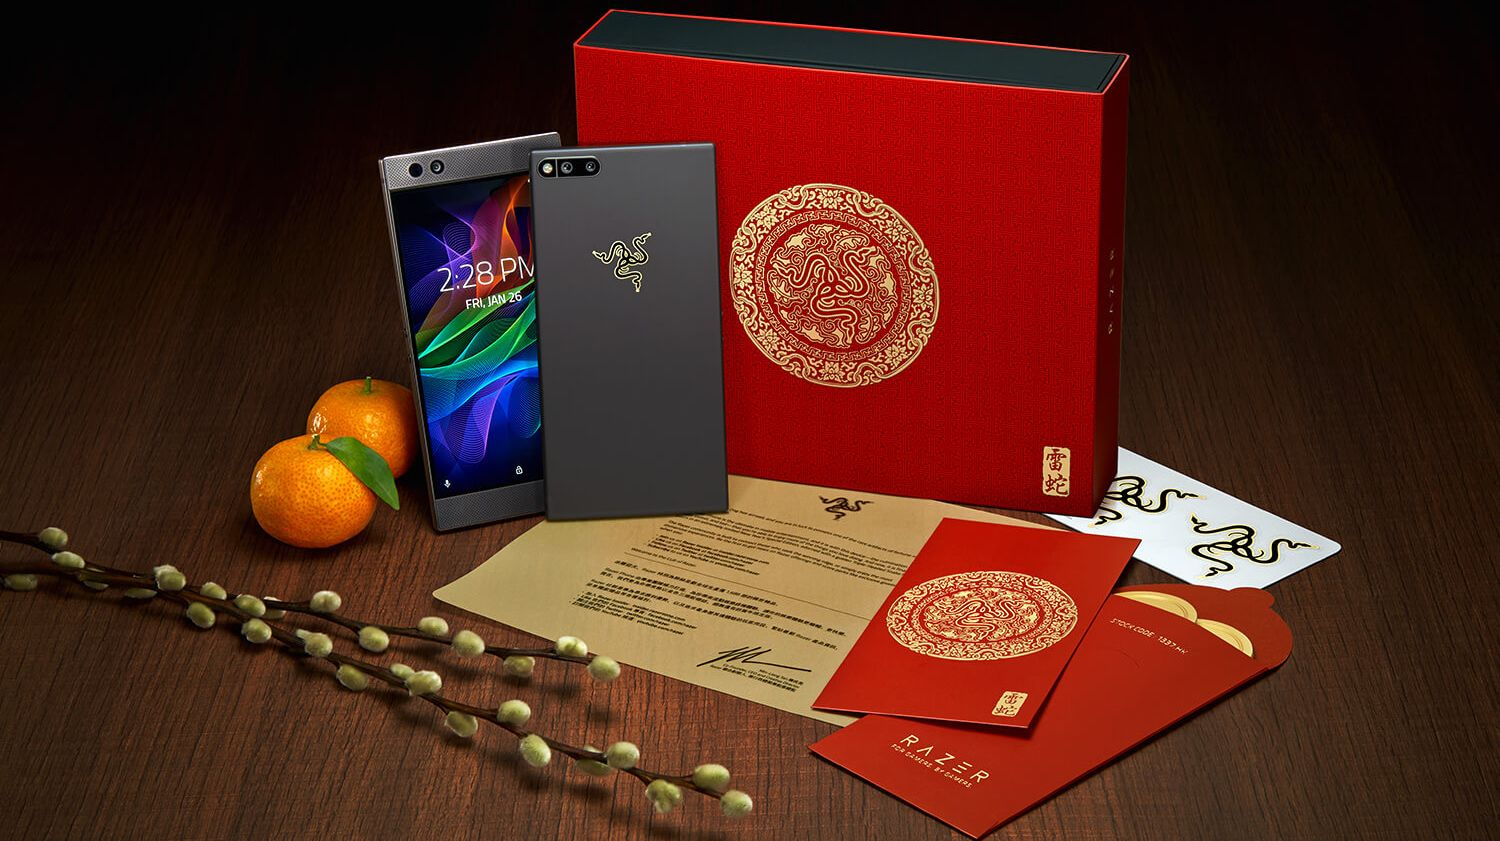 Limited Razer Phone 2018 Gold Edition celebrates the Spring Festival